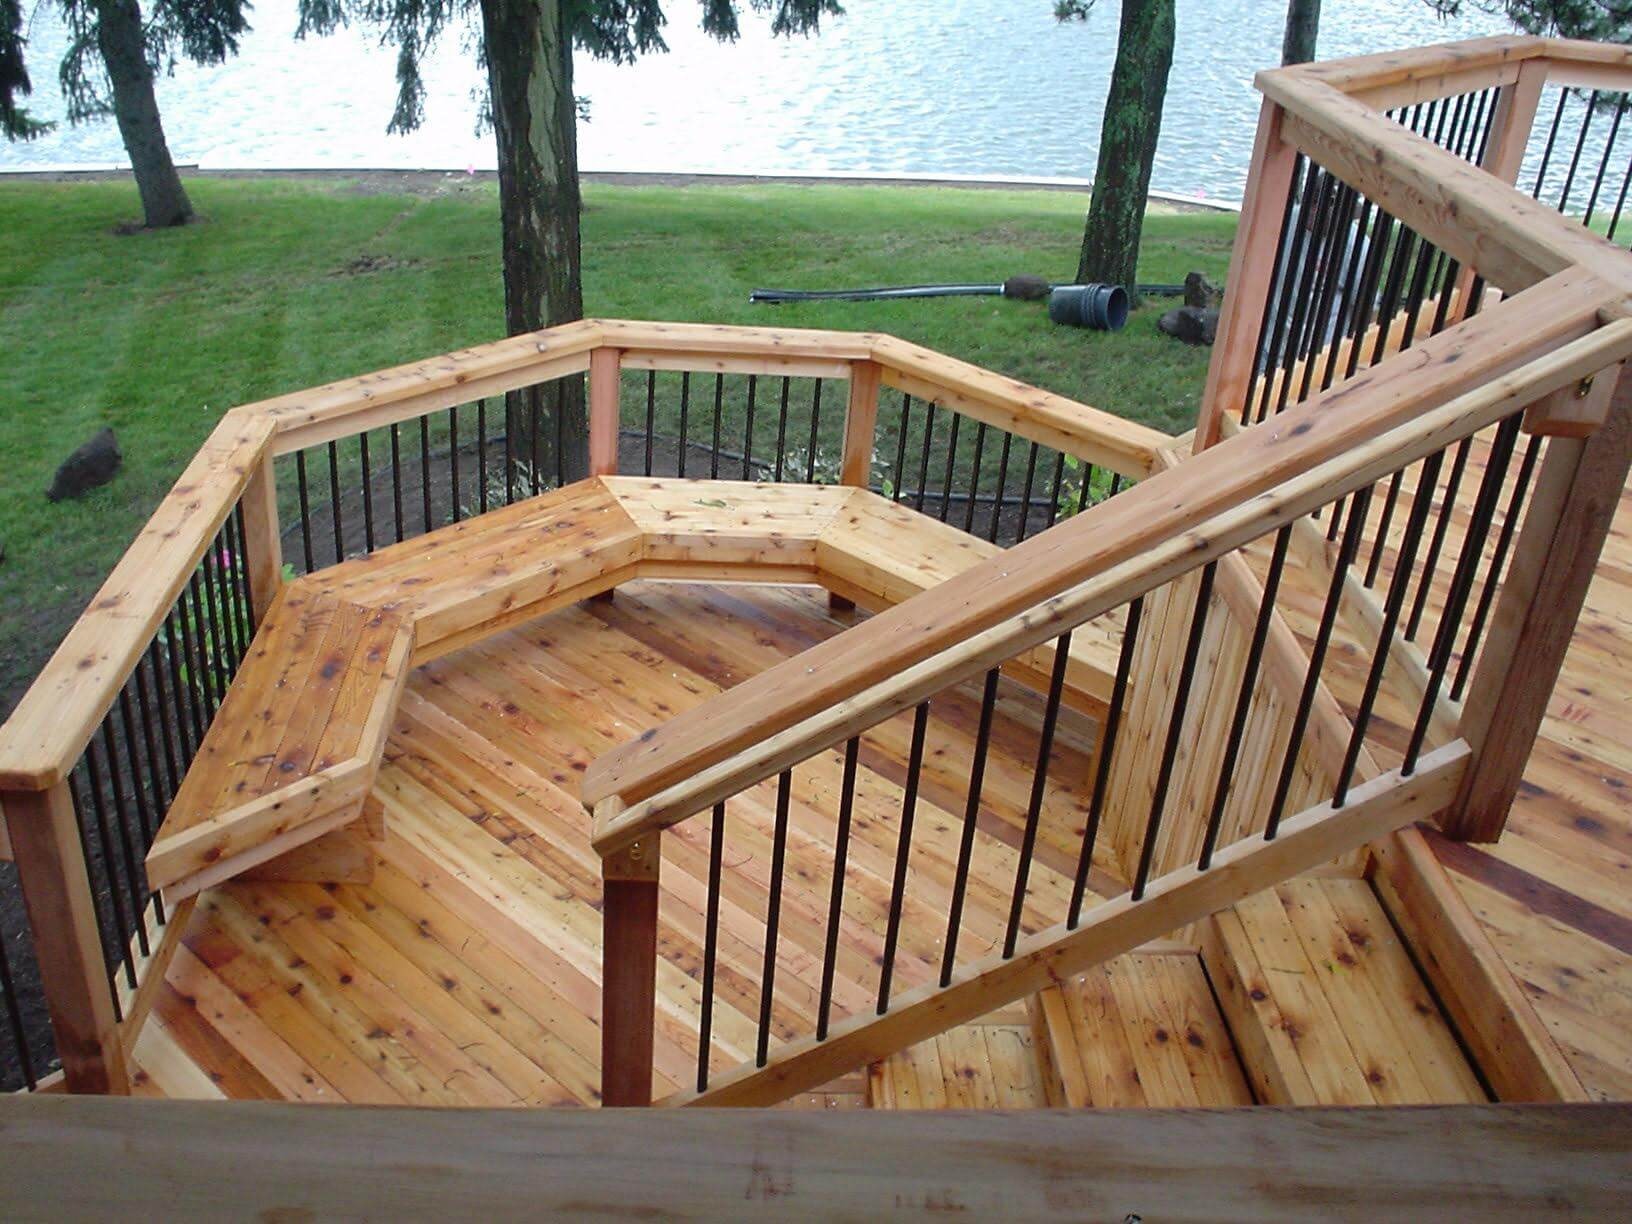 Cedar Deck and Bench.jpg